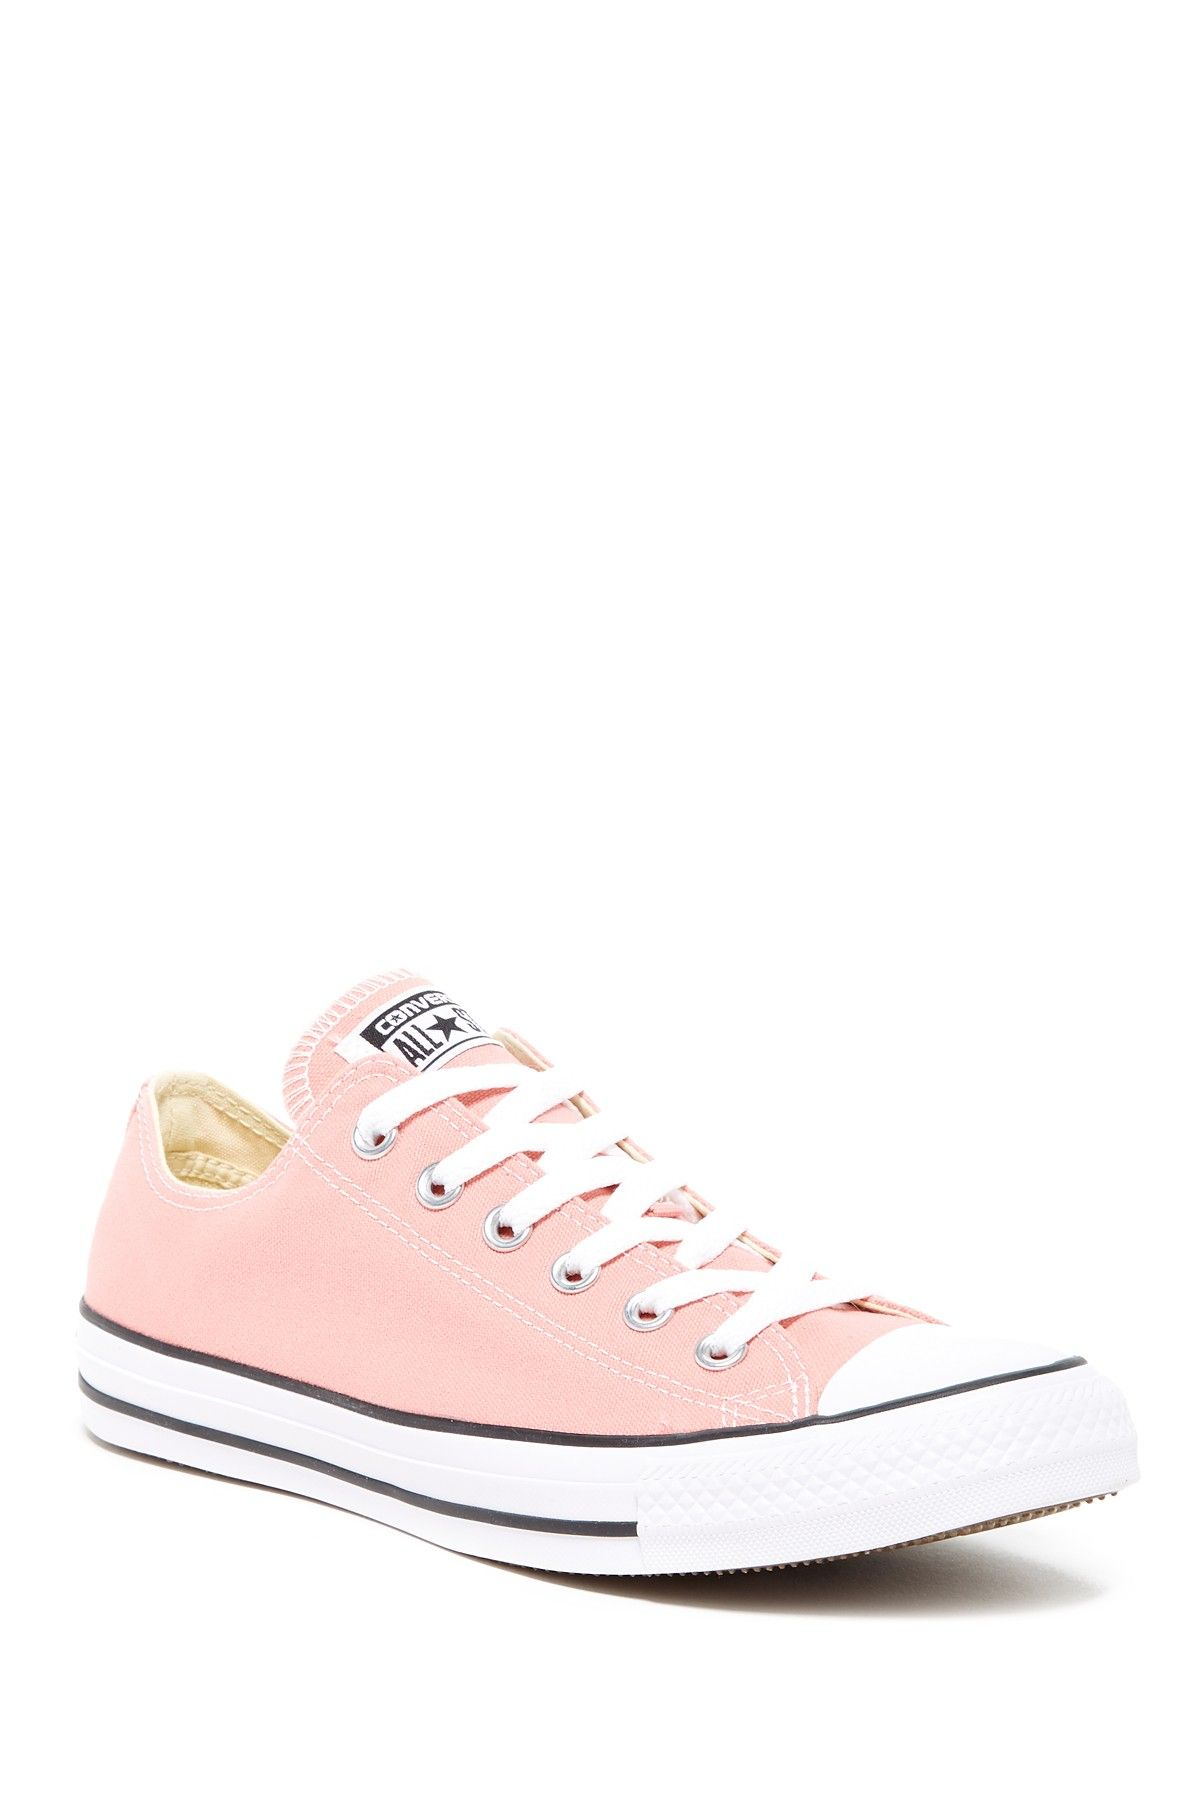 Converse | Chuck Taylor All Star Low Top Sneaker (Unisex) | Nordstrom Rack